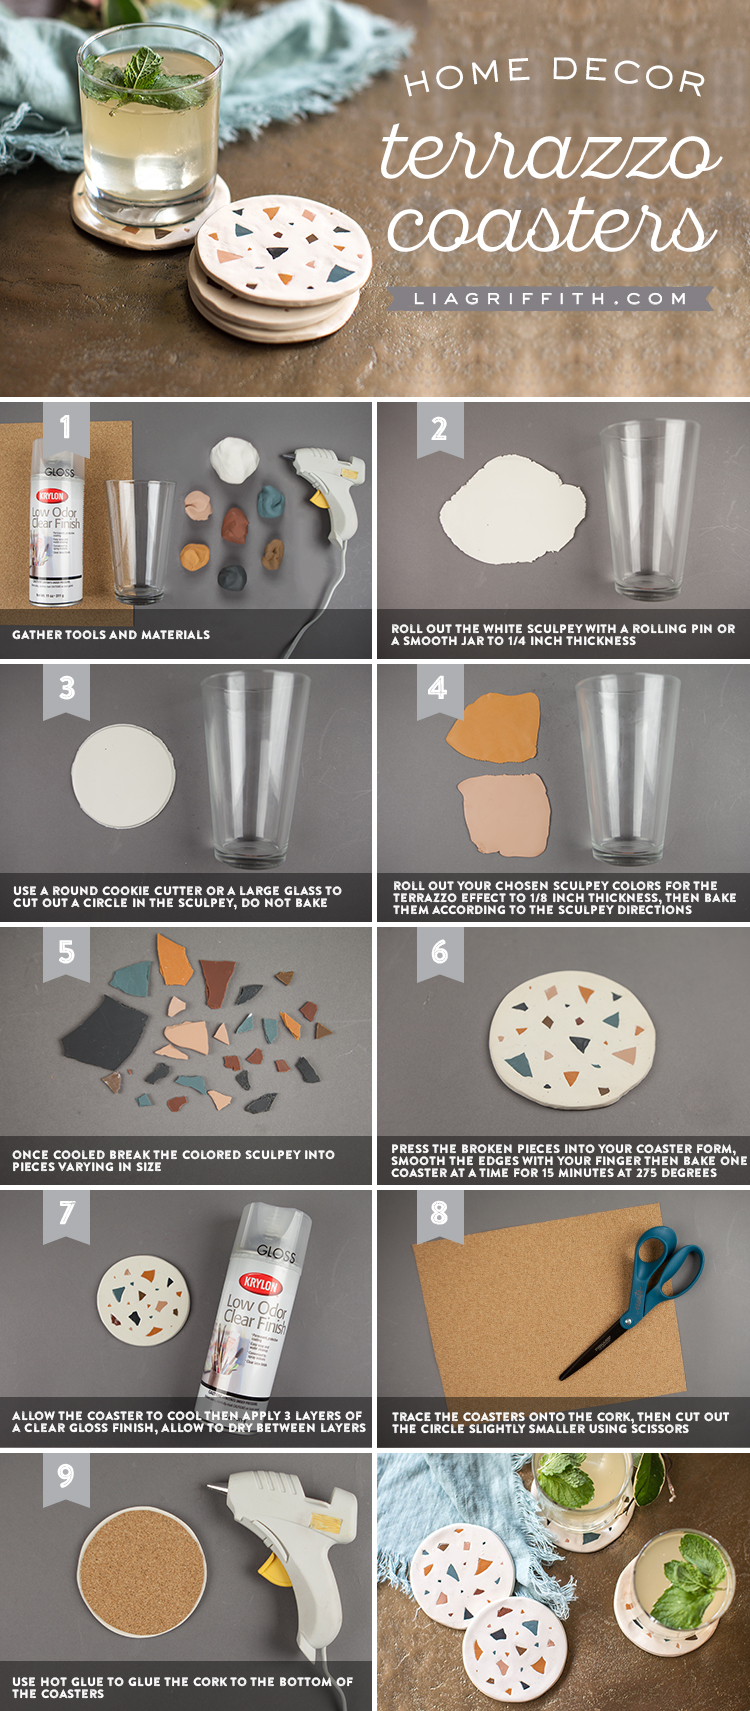 Tutorial for making home decor terrazzo coasters